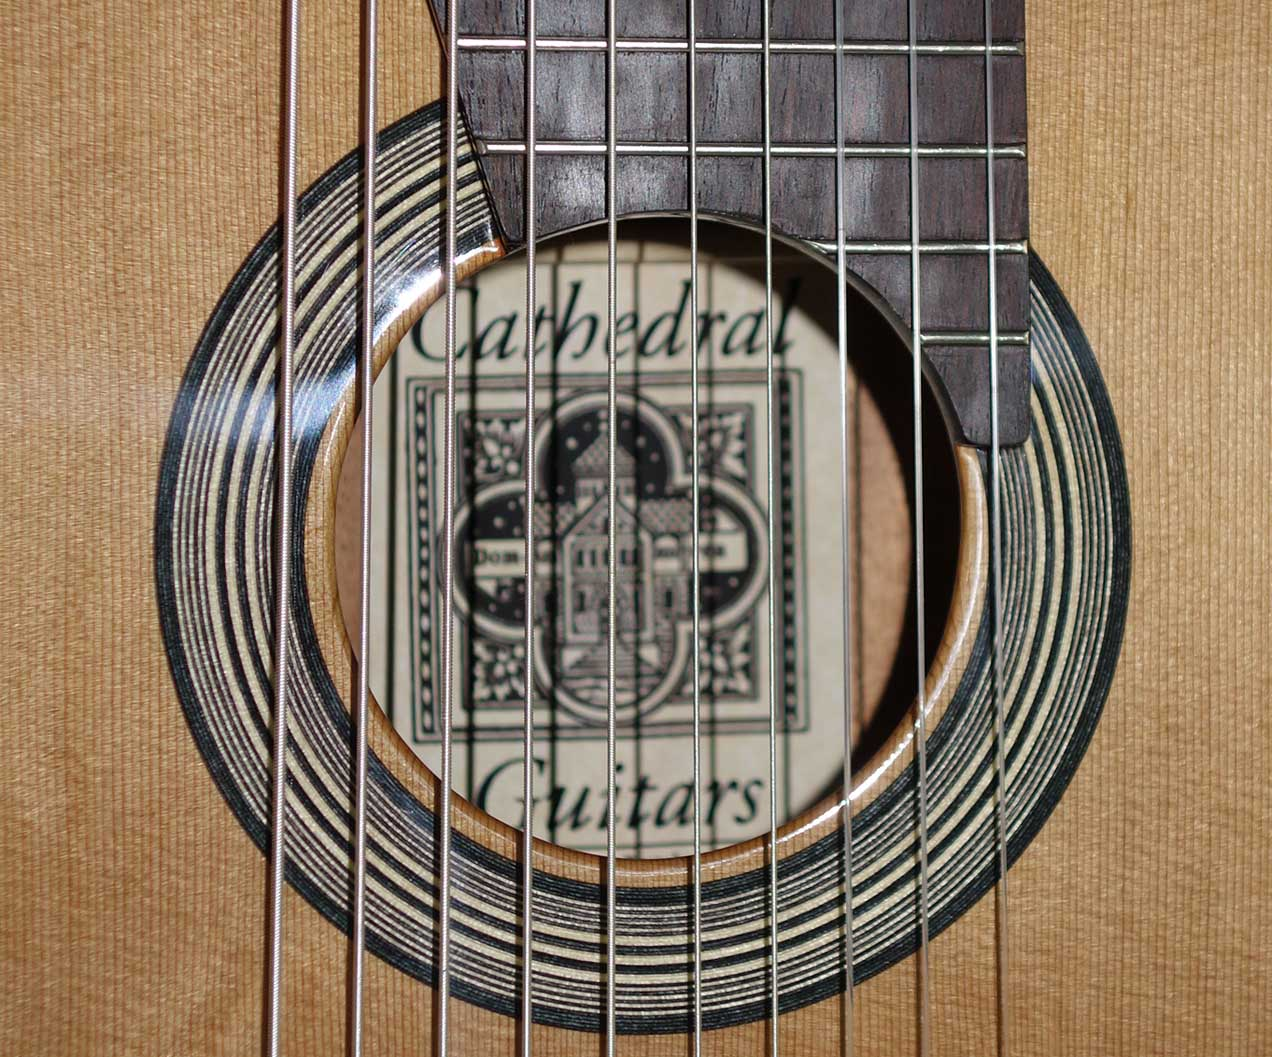 New Cathedral Guitars Model 15-EL, All-Solid Classical 10-String Harp Guitar w/Custom BBand A2.2 Pickup, Hardshell Case